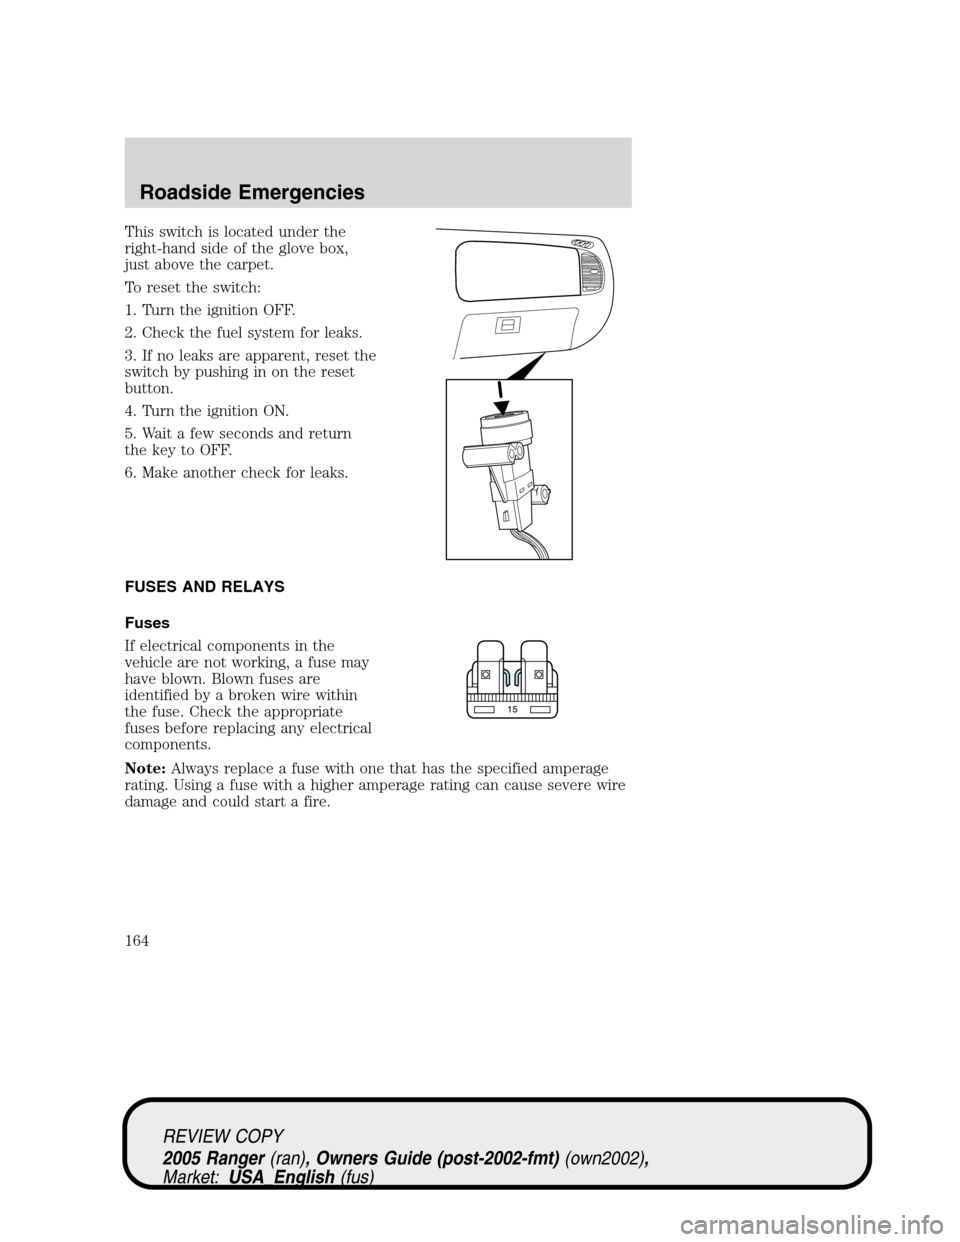 FORD RANGER 2005 2.G Owners Manual This switch is located under the right-hand side of the glove box, just above the carpet. To reset the switch: 1. Turn the ignition OFF. 2. Check the fuel system for leaks. 3. If no leaks are apparent